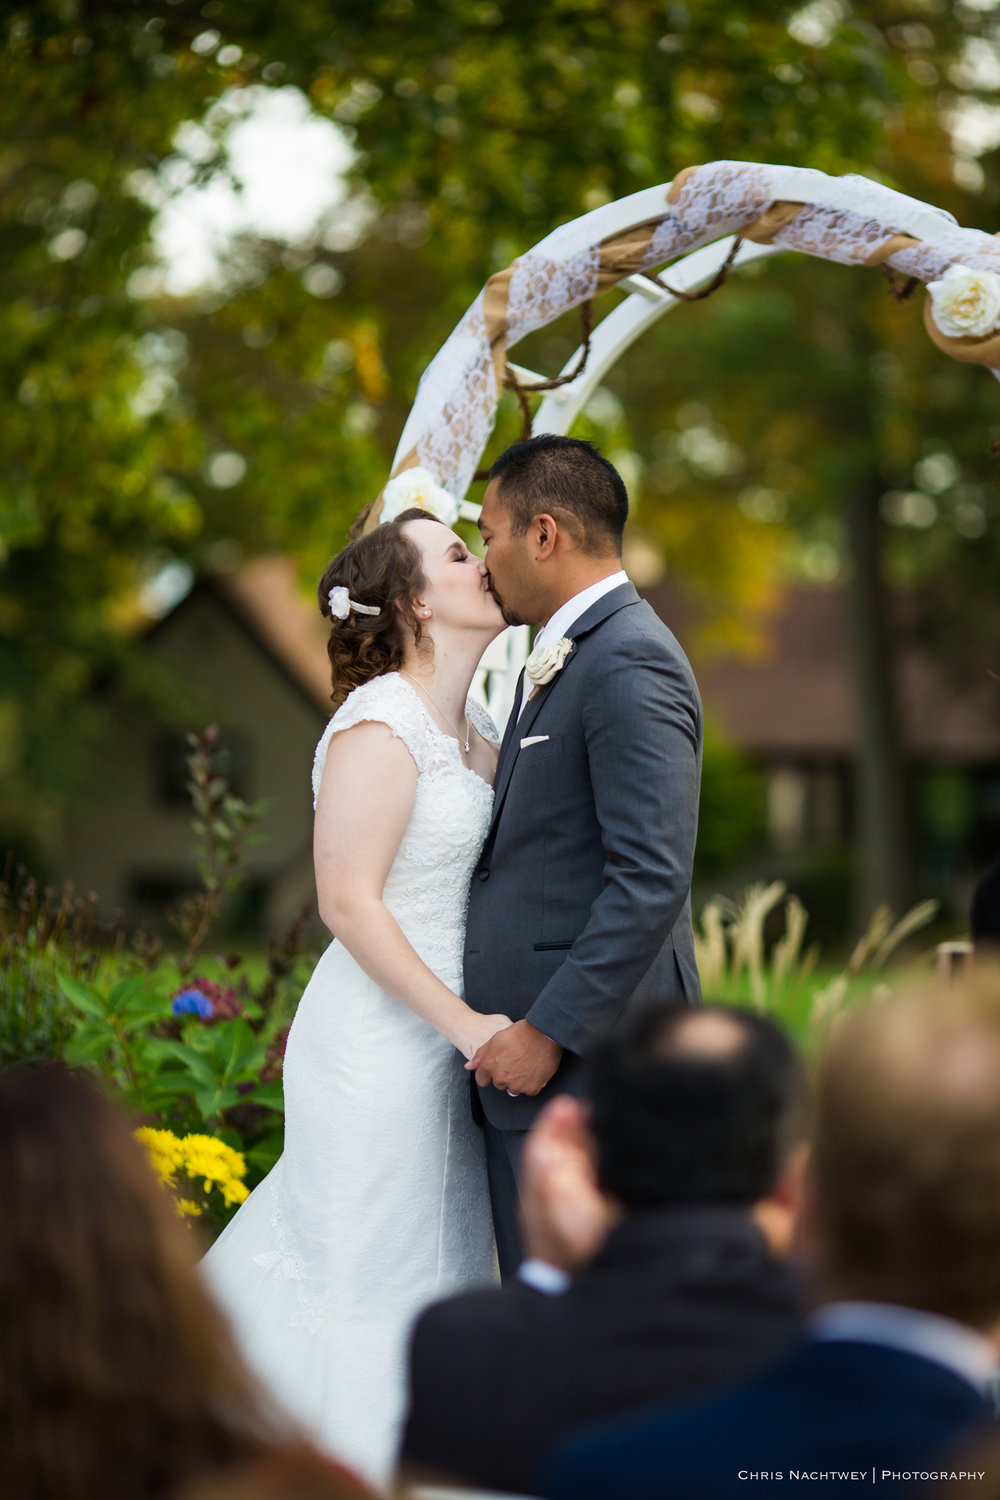 wedding-photos-oronoque-country-club-connecticut-amanda-joe-chris-nachtwey-photography-2018-14.jpg